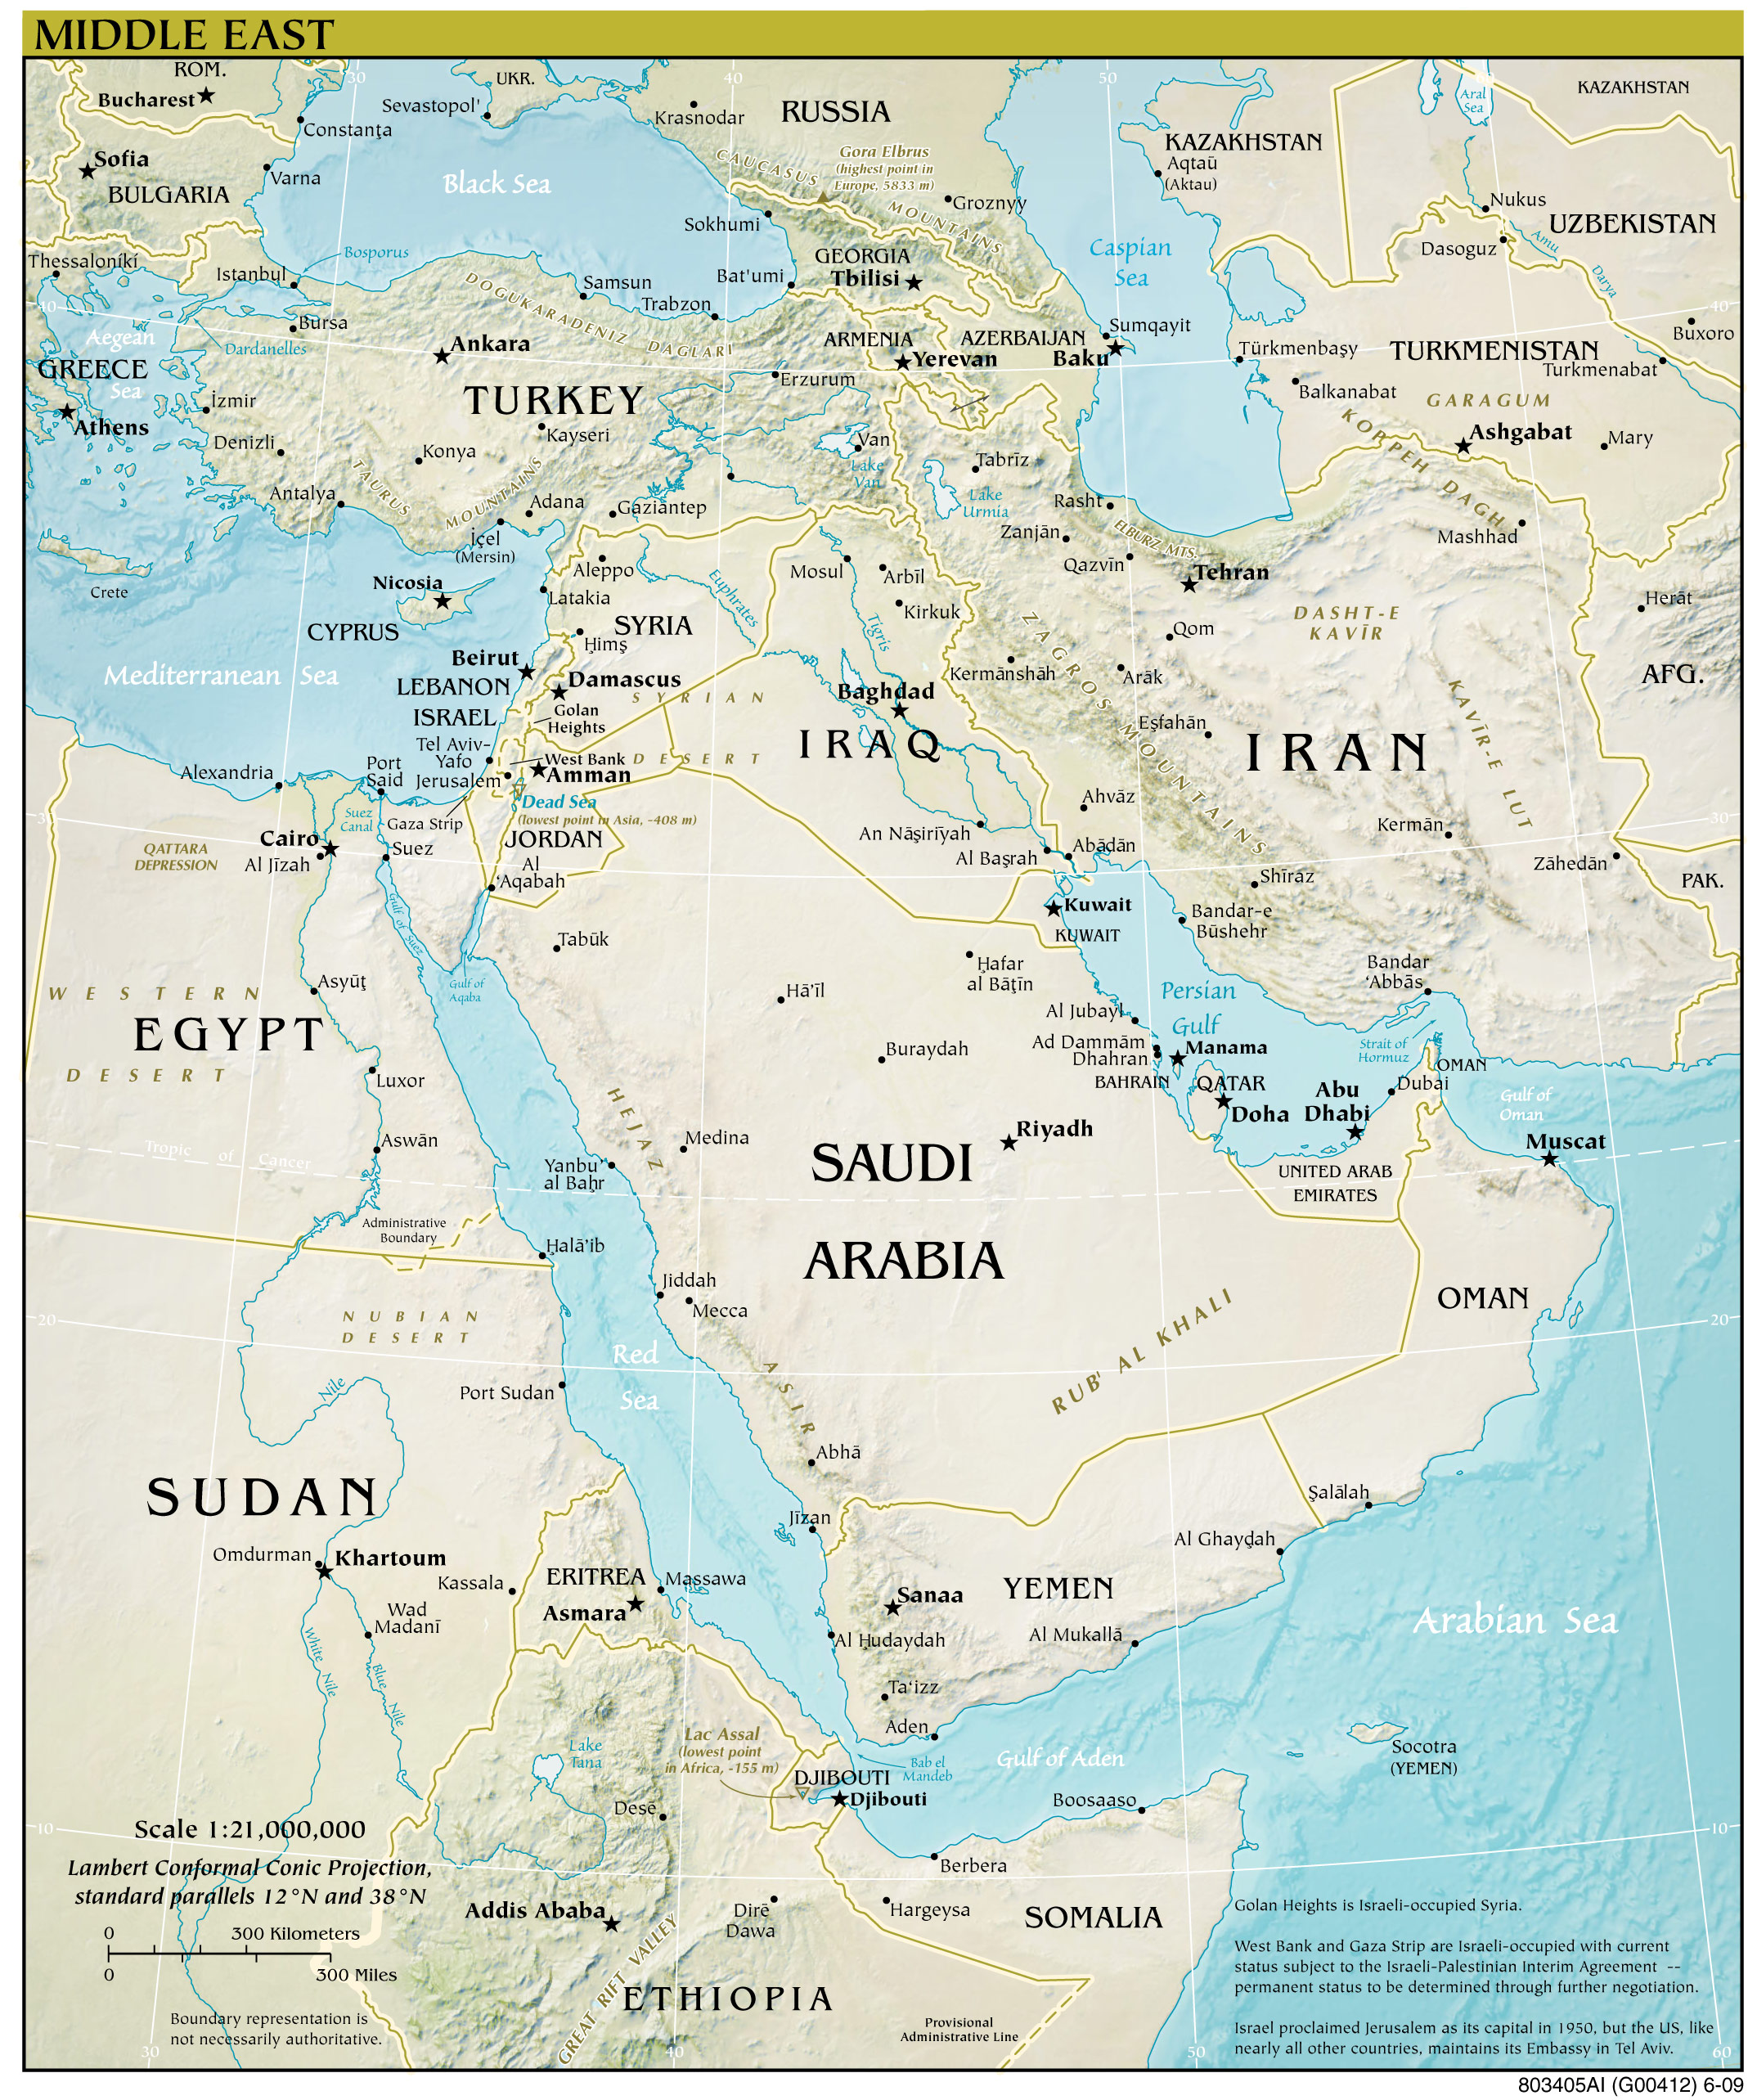 Middle East Map 2012 Mapsofnet